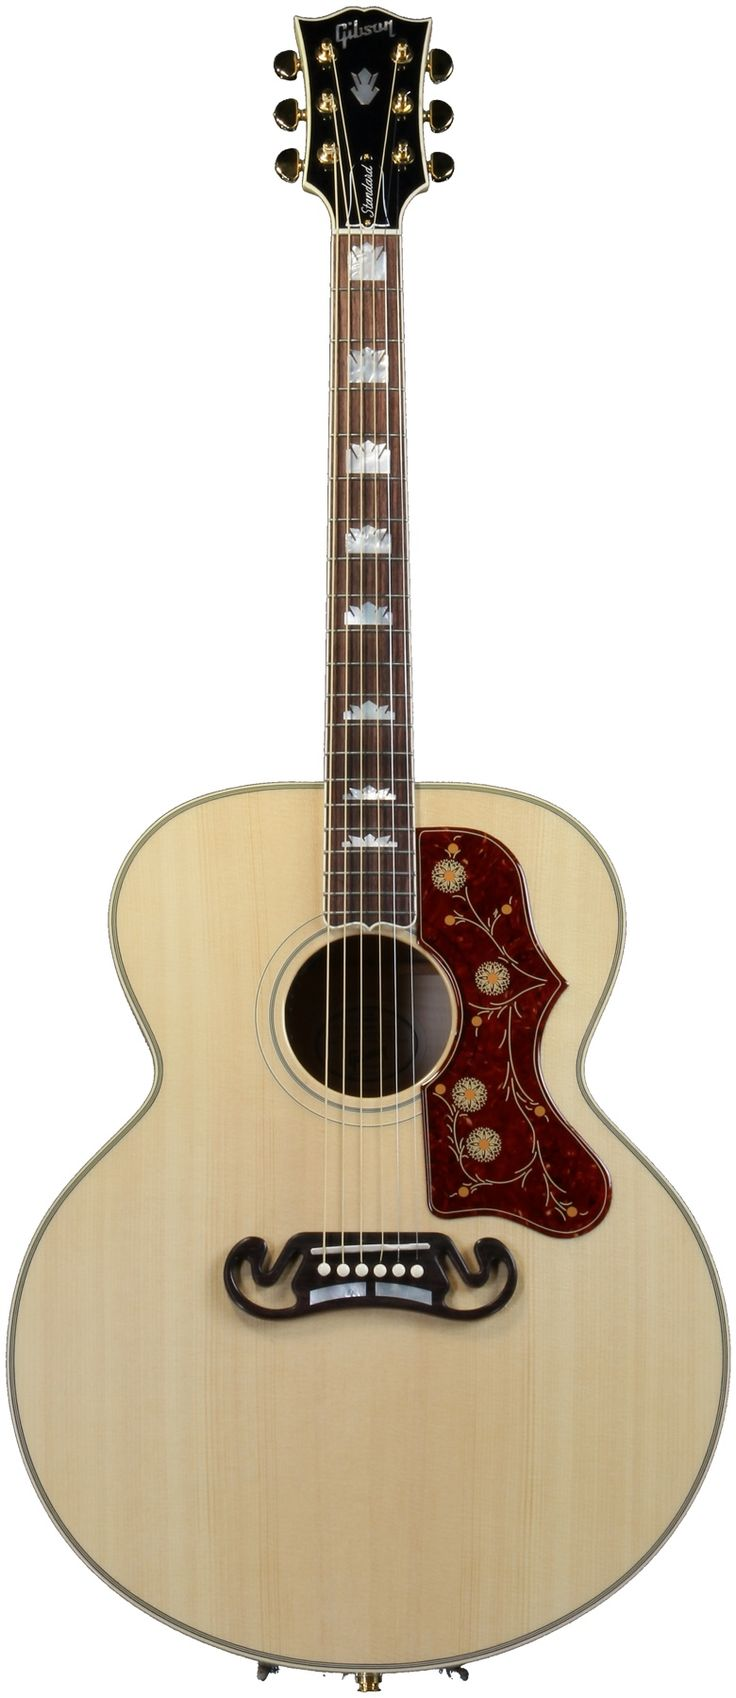 Gibson Acoustic J-200 Standard (Antique Natural) | Sweetwater.com -kinda want a Gibson guitar... not sure which one, so I'll just post this one... but maybe one day... I do like this J-200